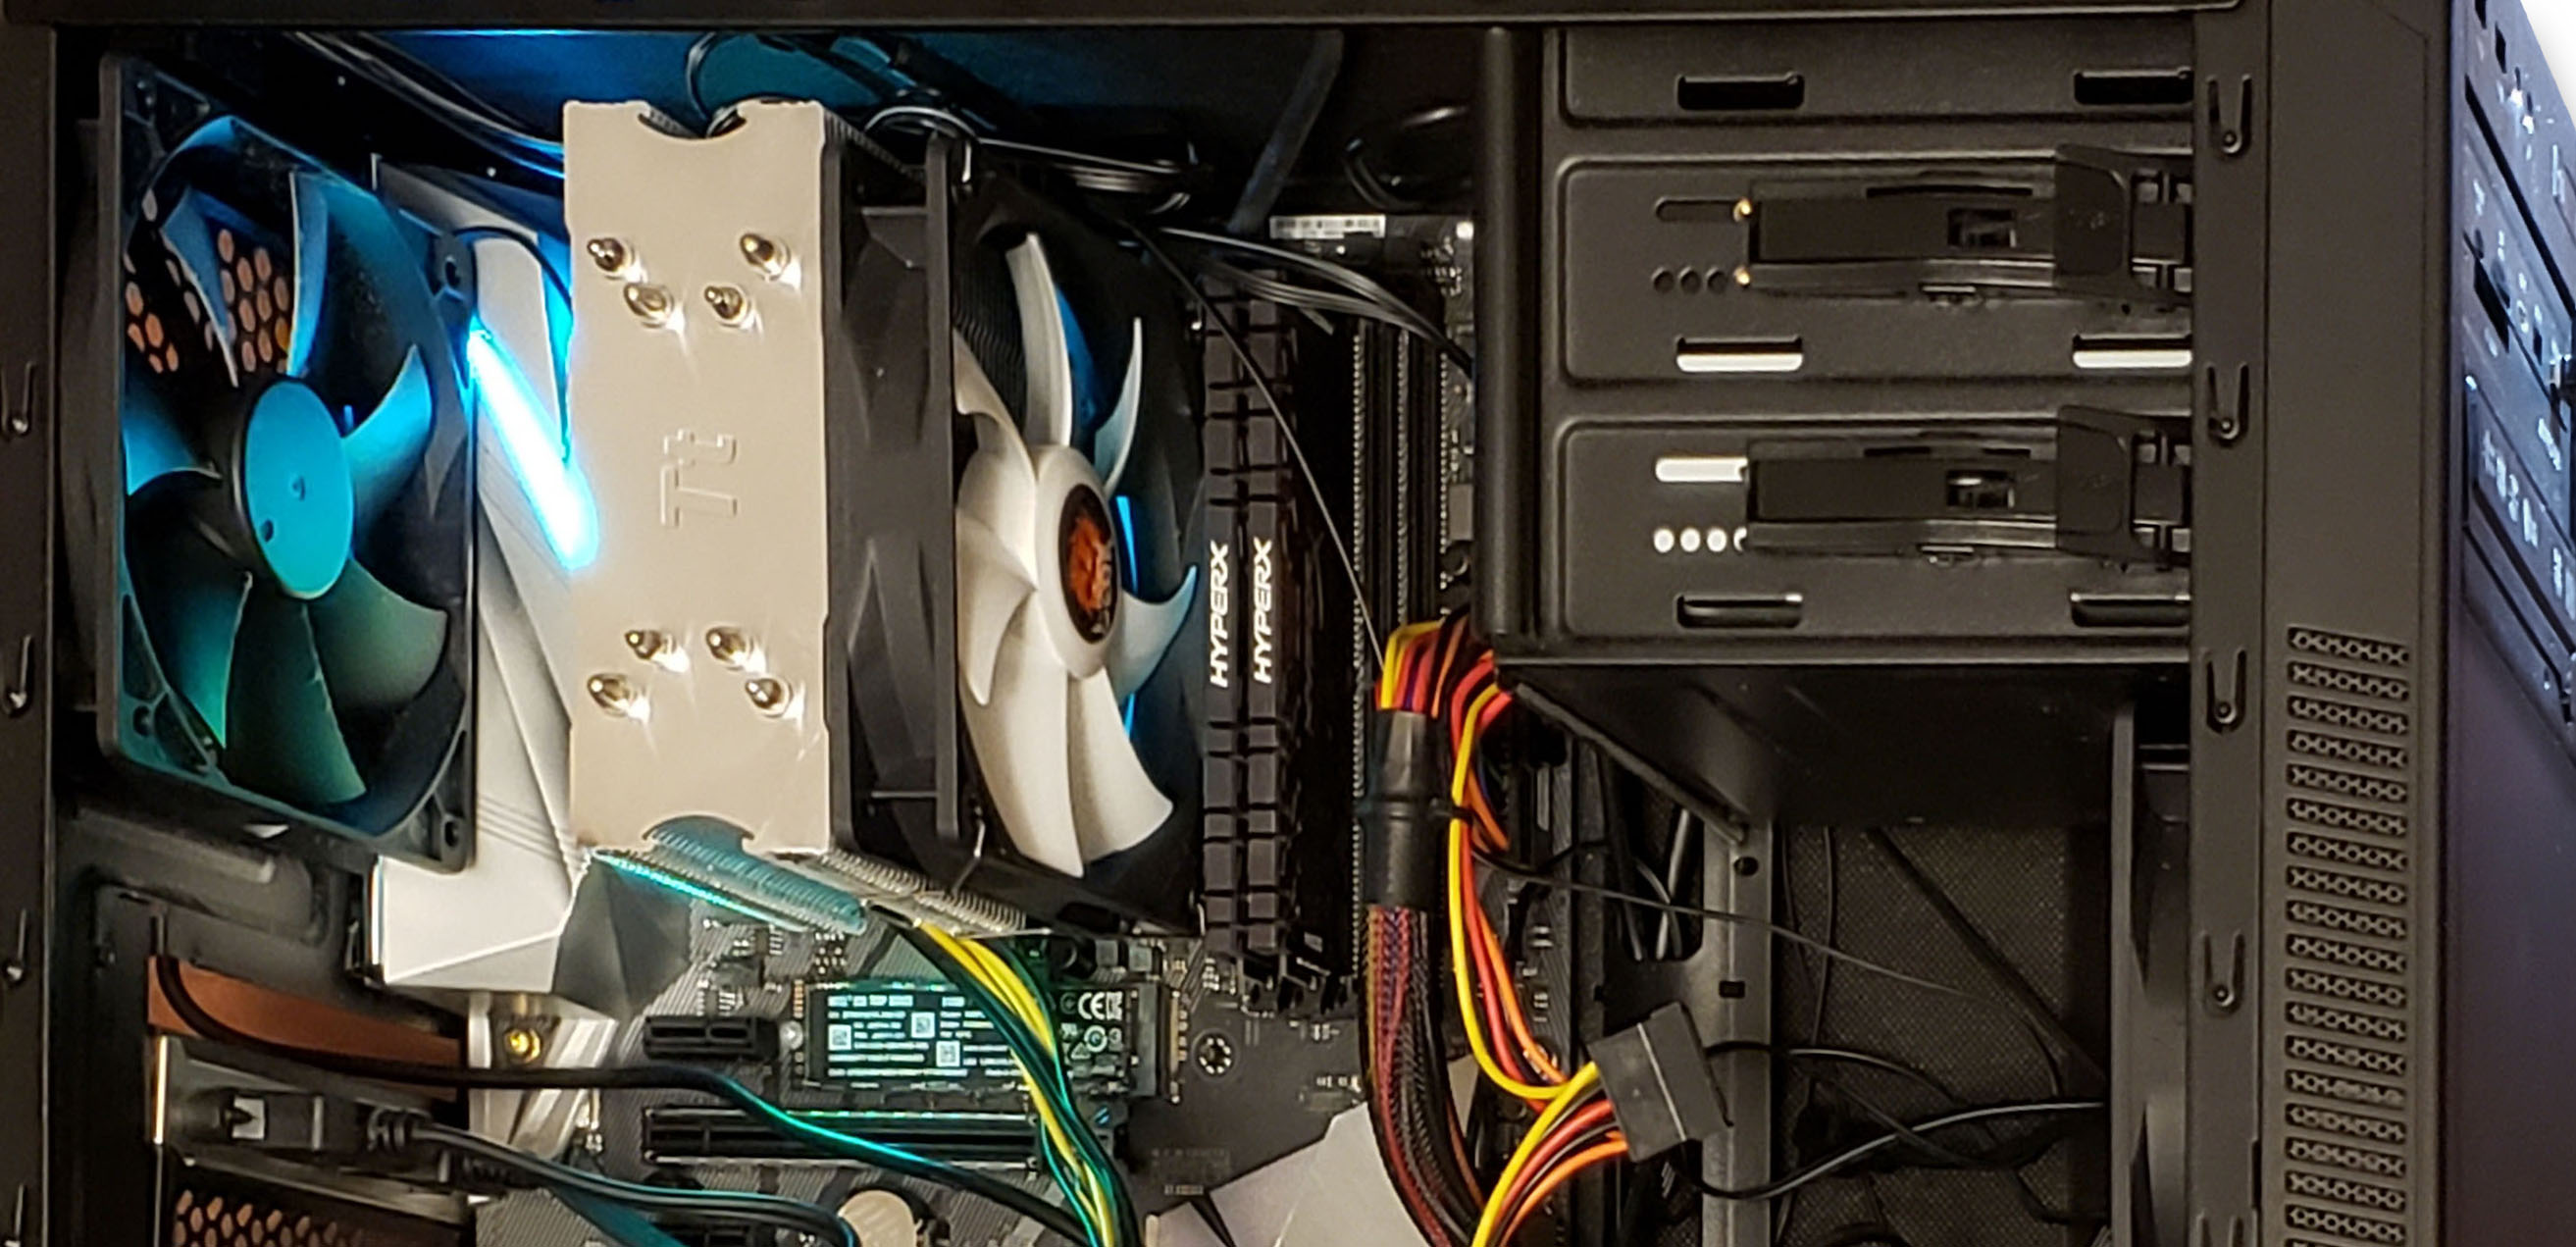 Build your own pc store